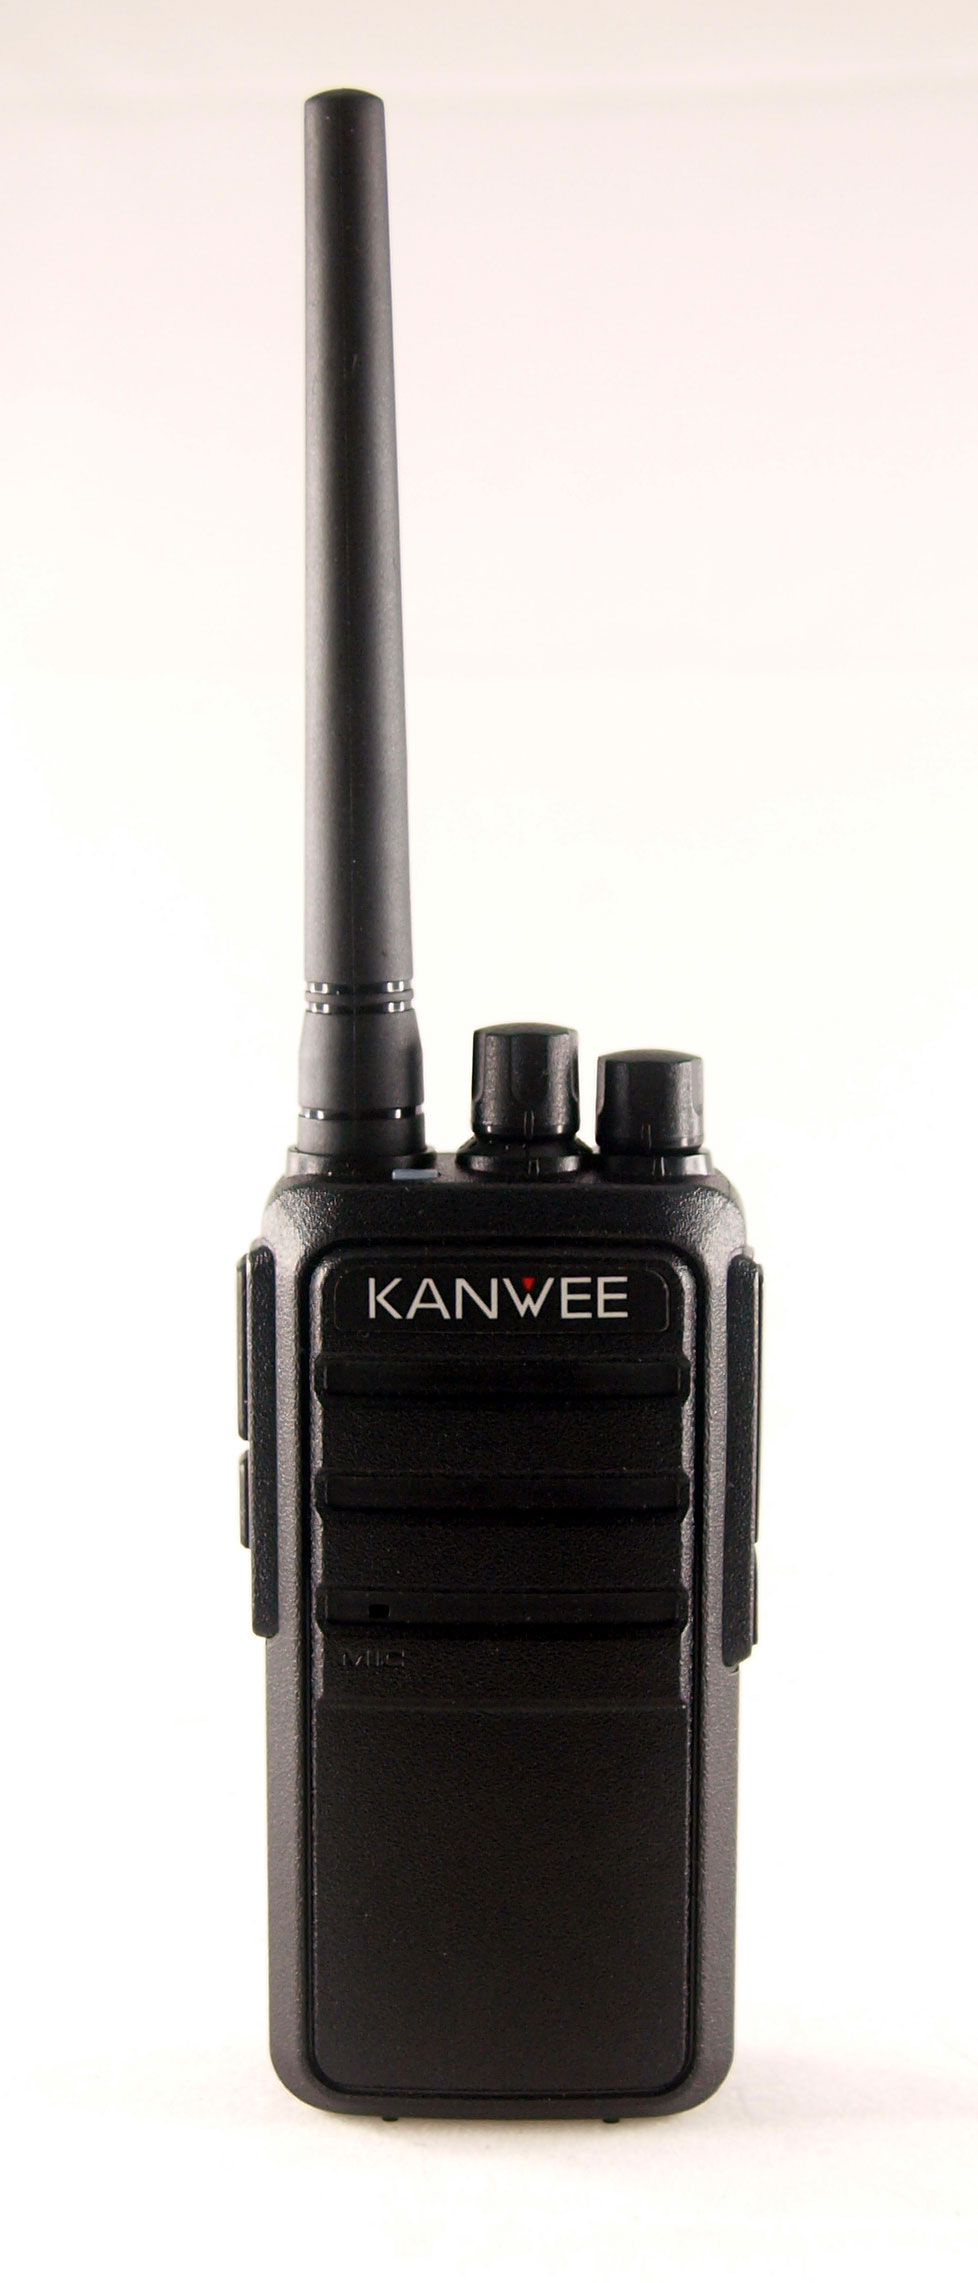 Kanwee X-3 by TYT UHF handheld transceiver with 16 channel memory